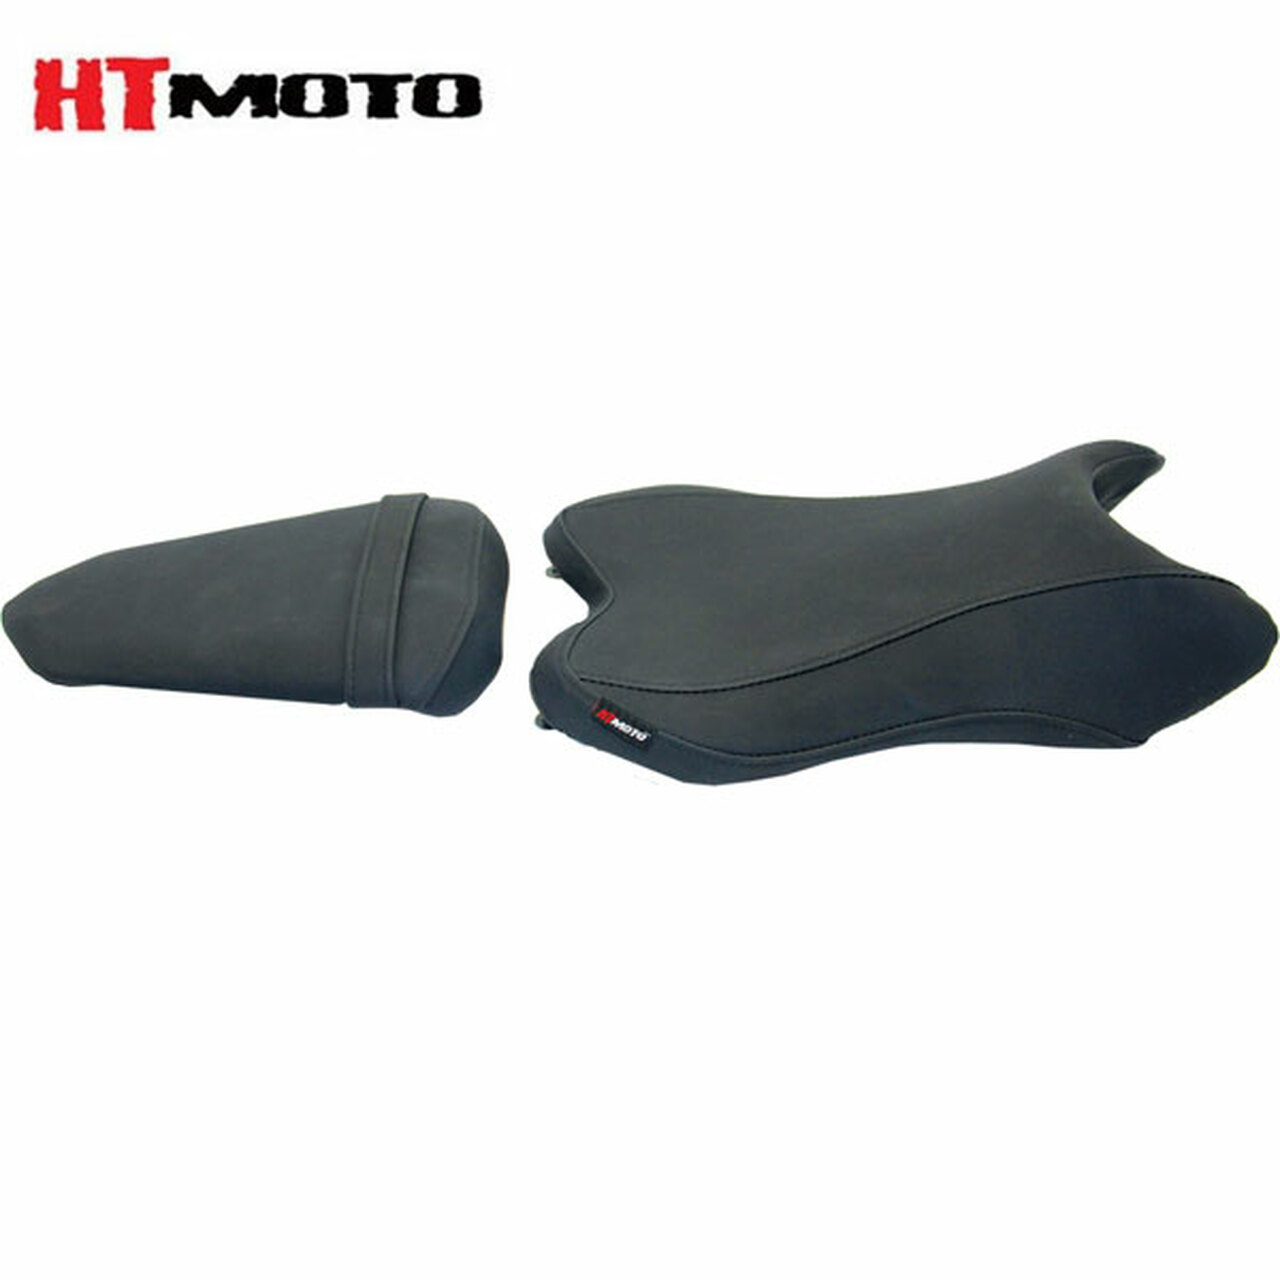 Fabulous Ht Moto Yamaha Yzf R1 04 06 Seat Cover Gamerscity Chair Design For Home Gamerscityorg